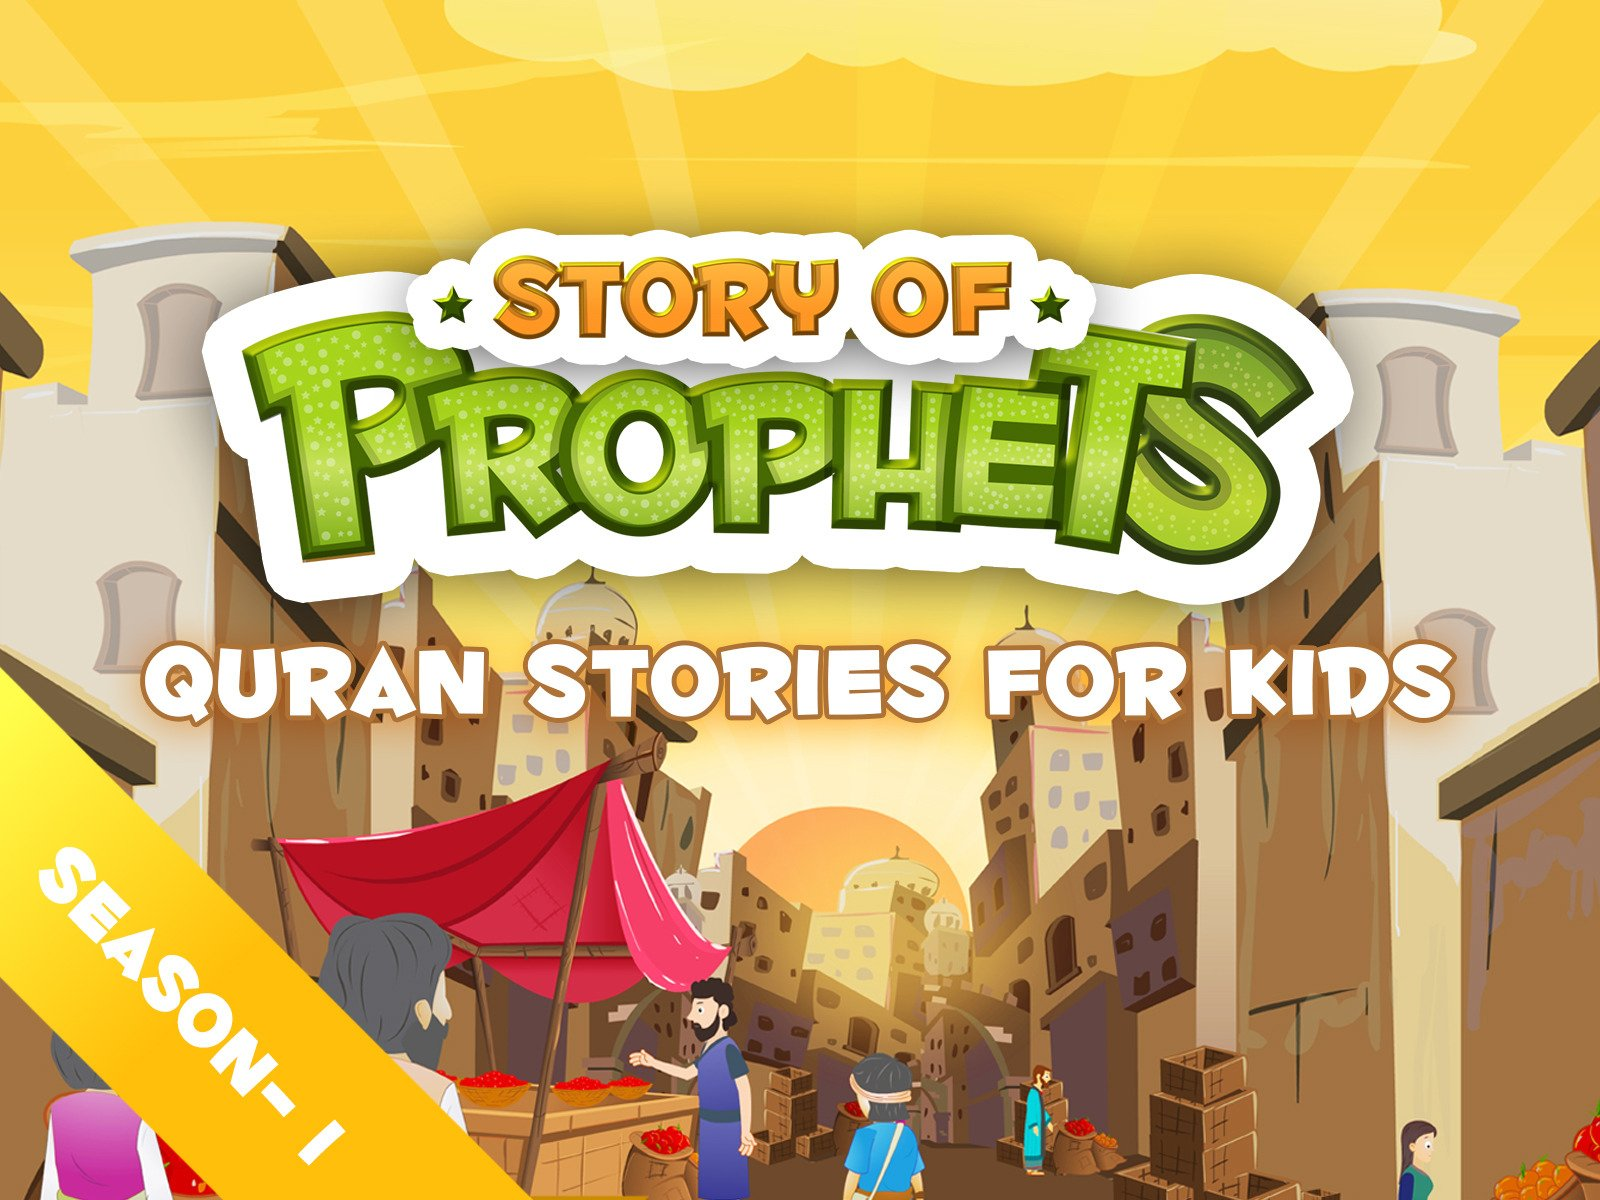 Quran Stories for Kids - Season 1